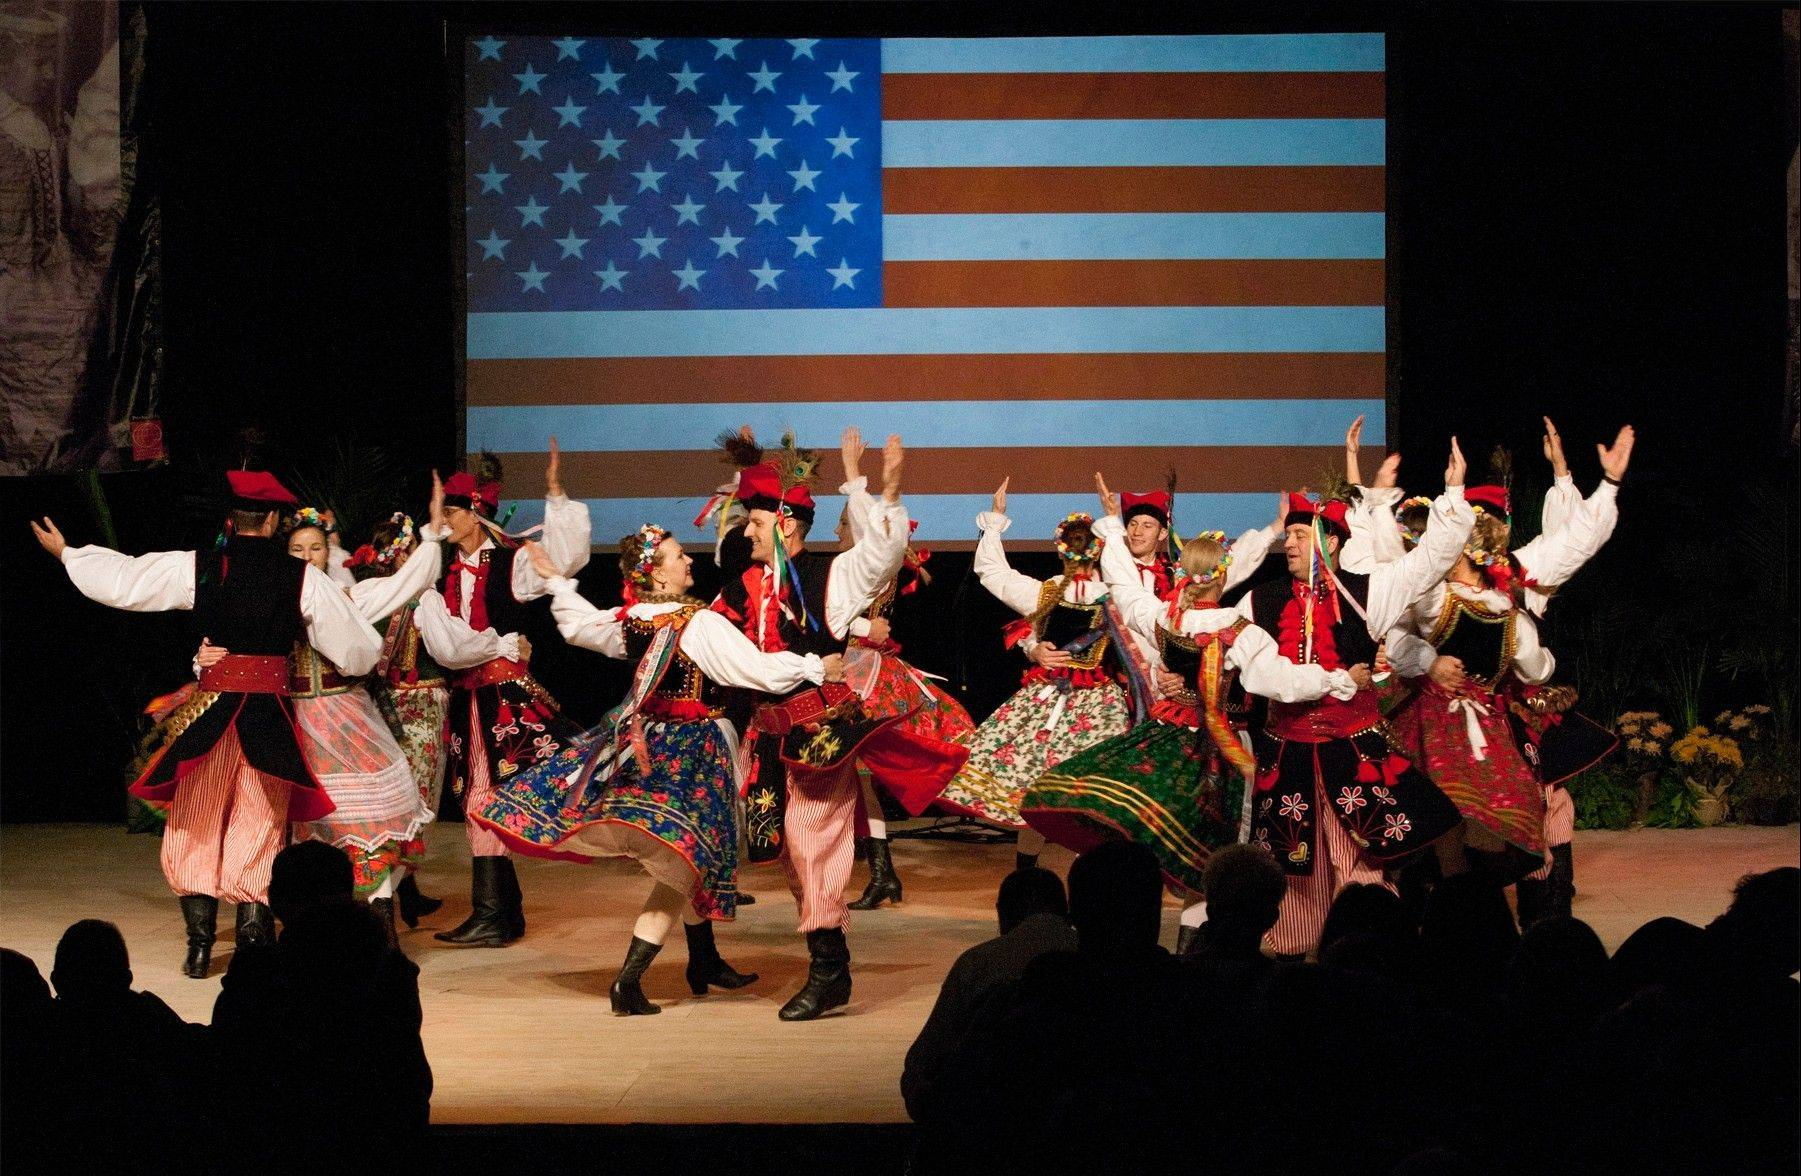 The 70th Holiday Folk Fair International near Milwaukee features multicultural cuisine, arts and crafts plus music and dance performances, Nov. 22-24.